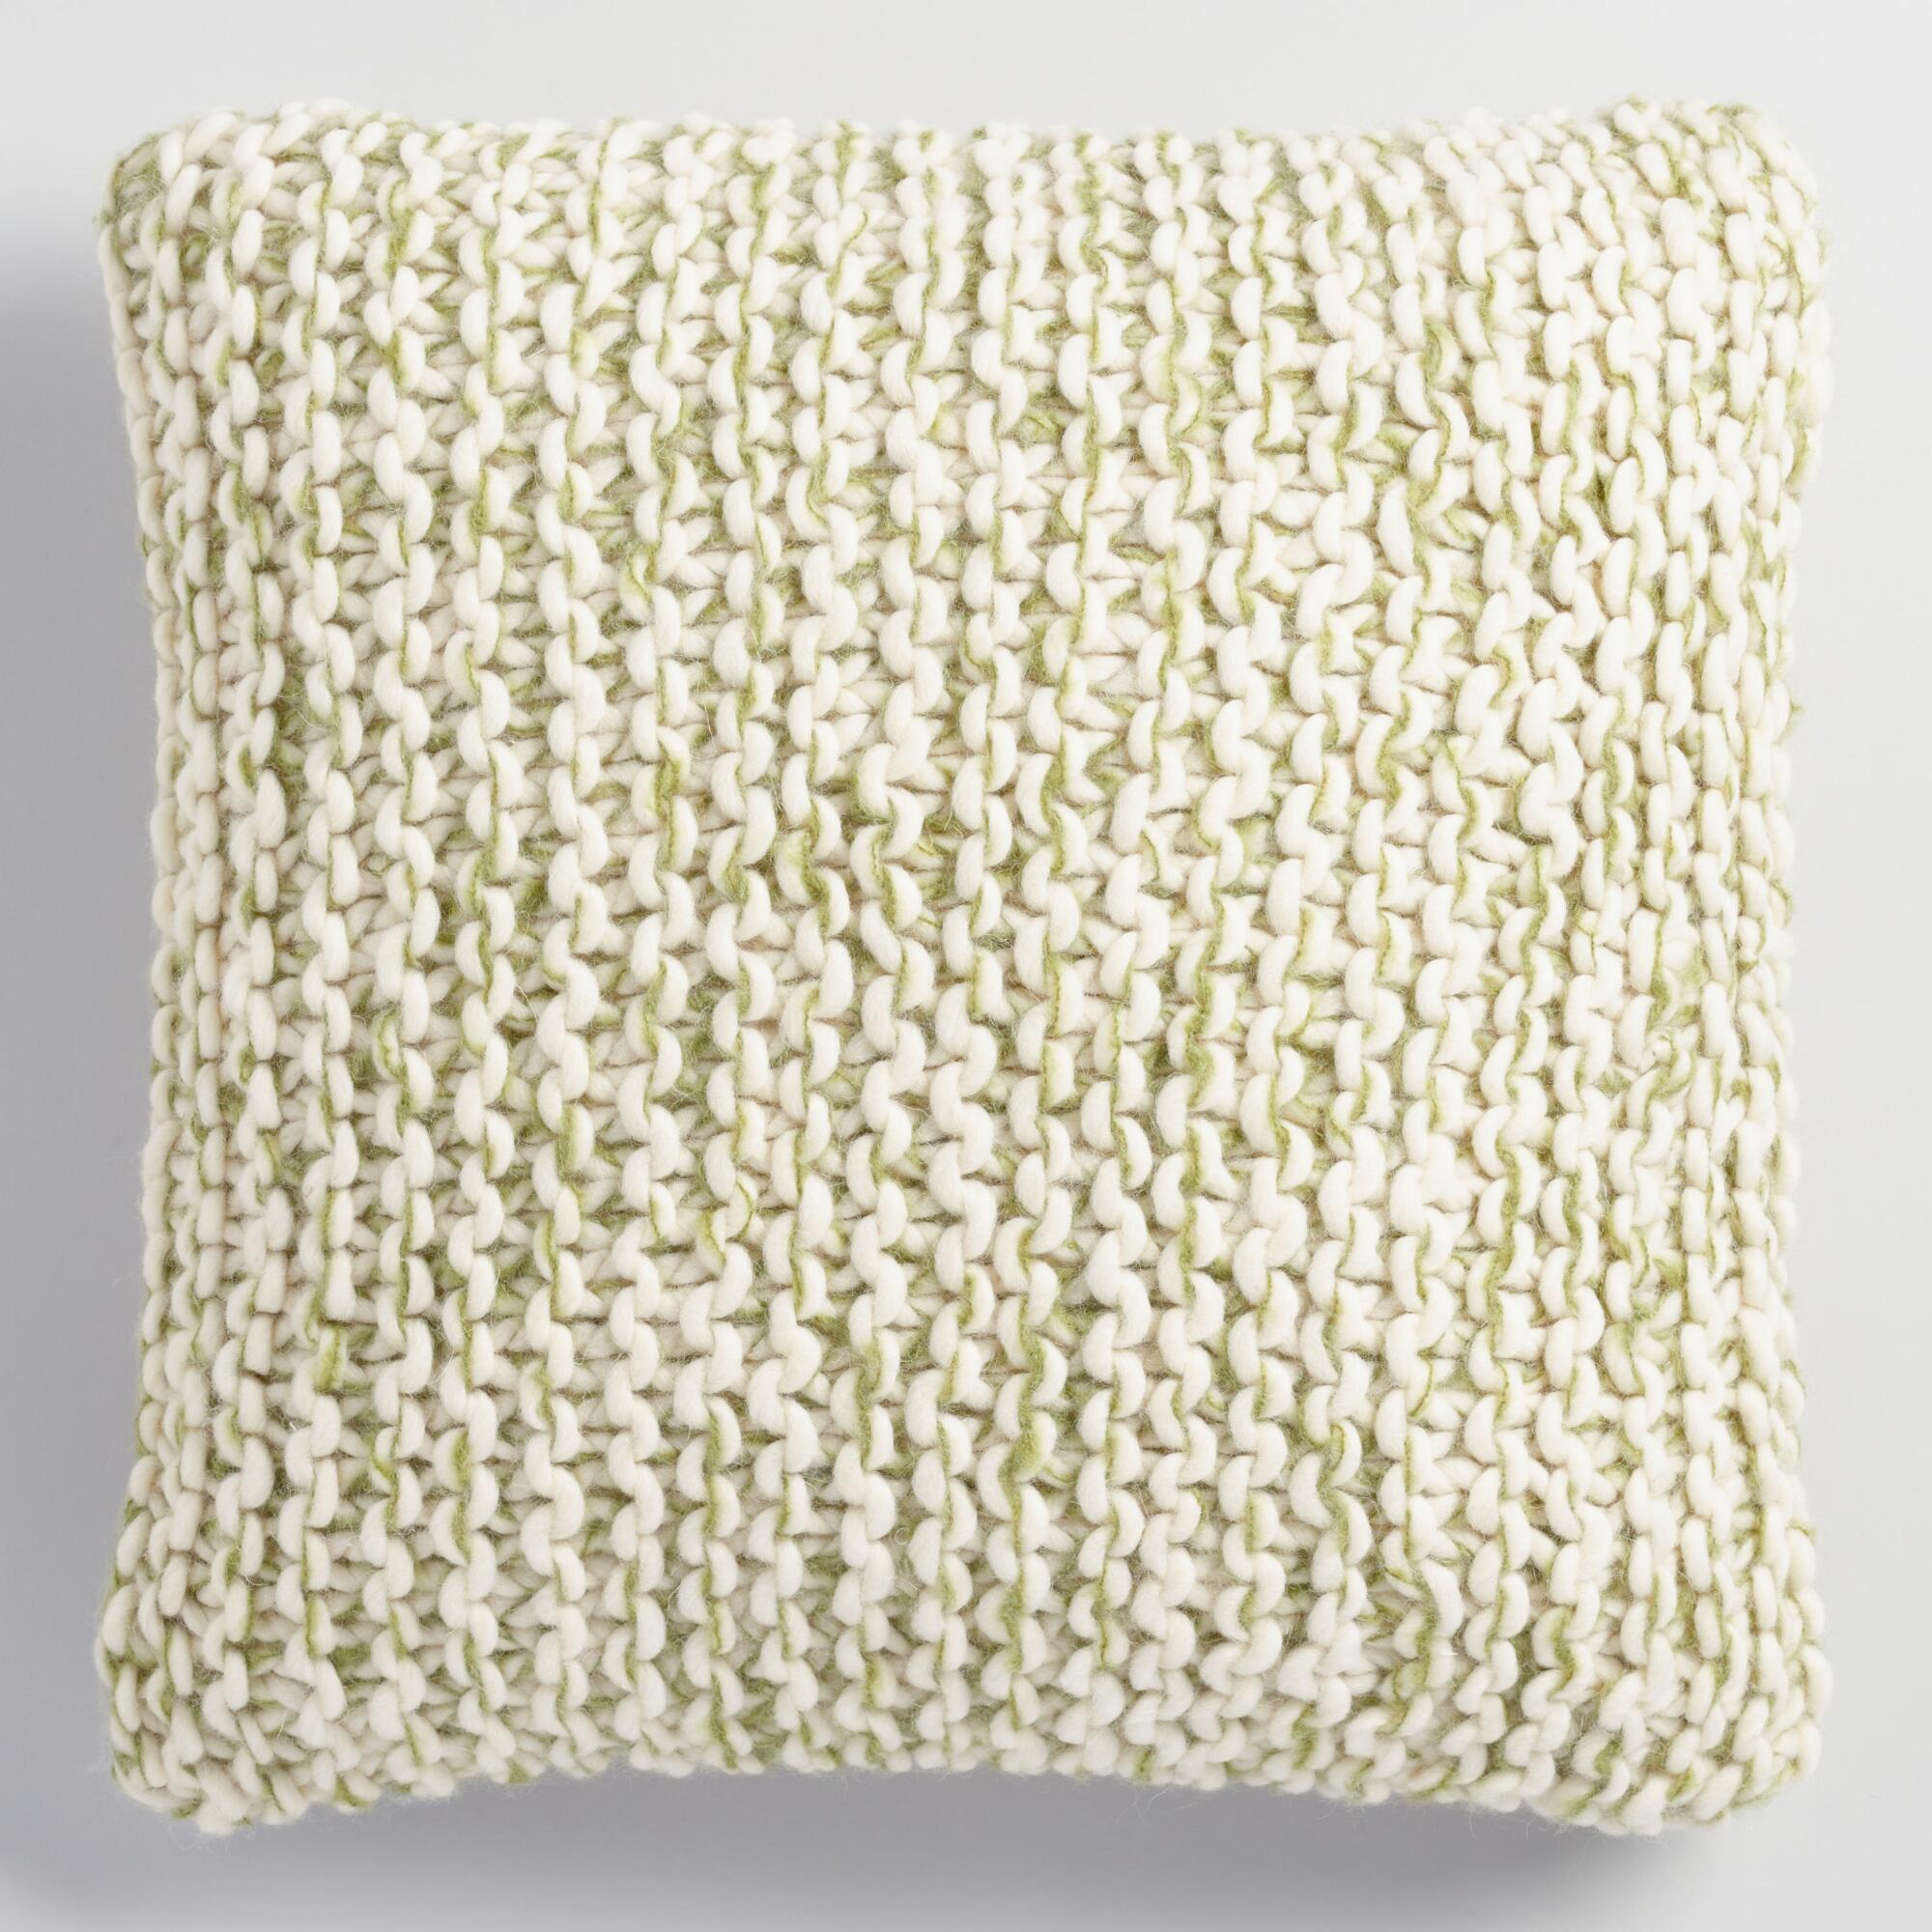 Knitting Pillows : Green and ivory chunky knit throw pillow world market